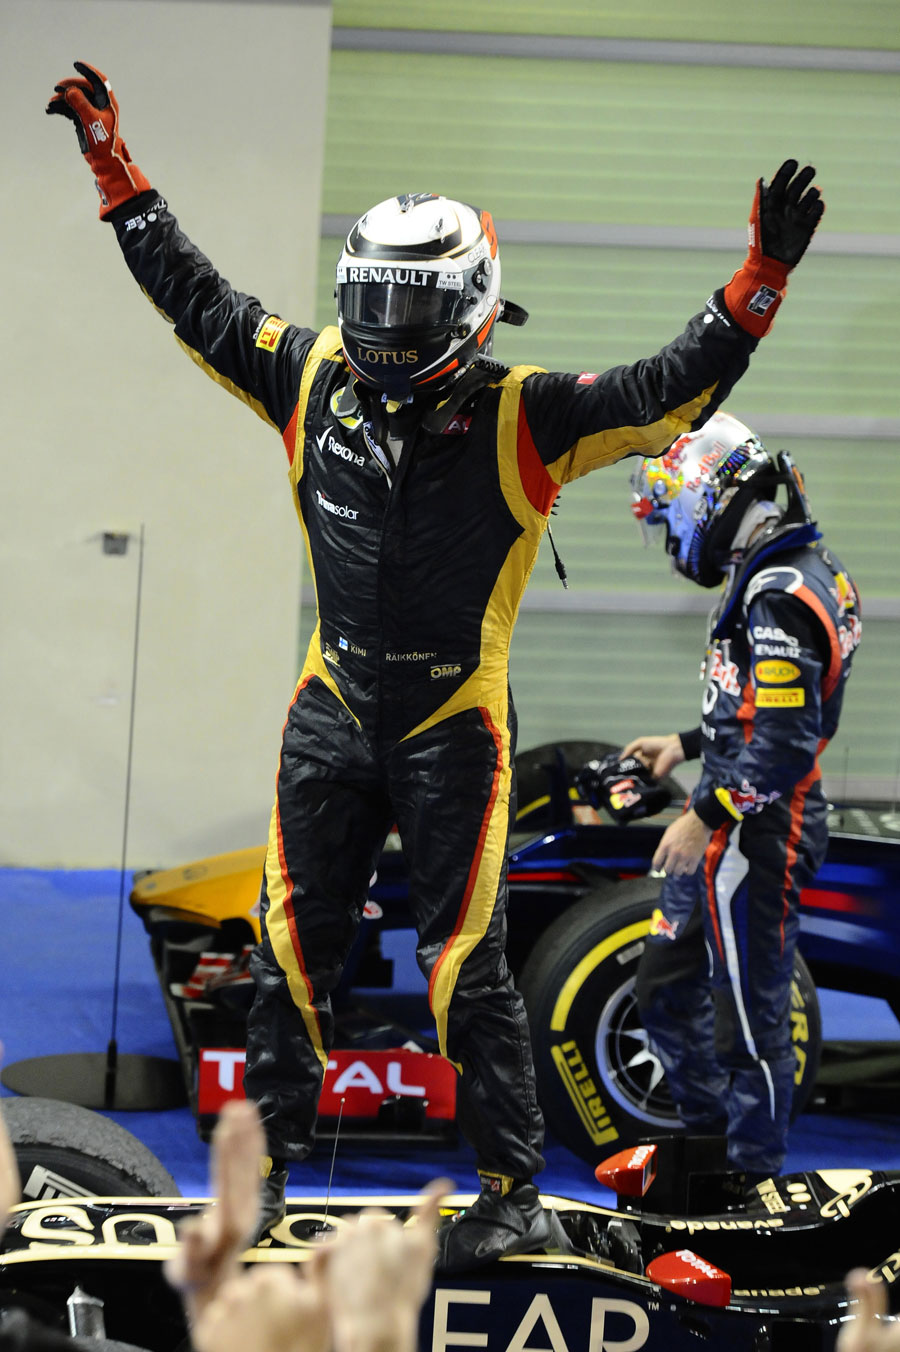 Kimi Raikkonen celebrates on top of his Lotus